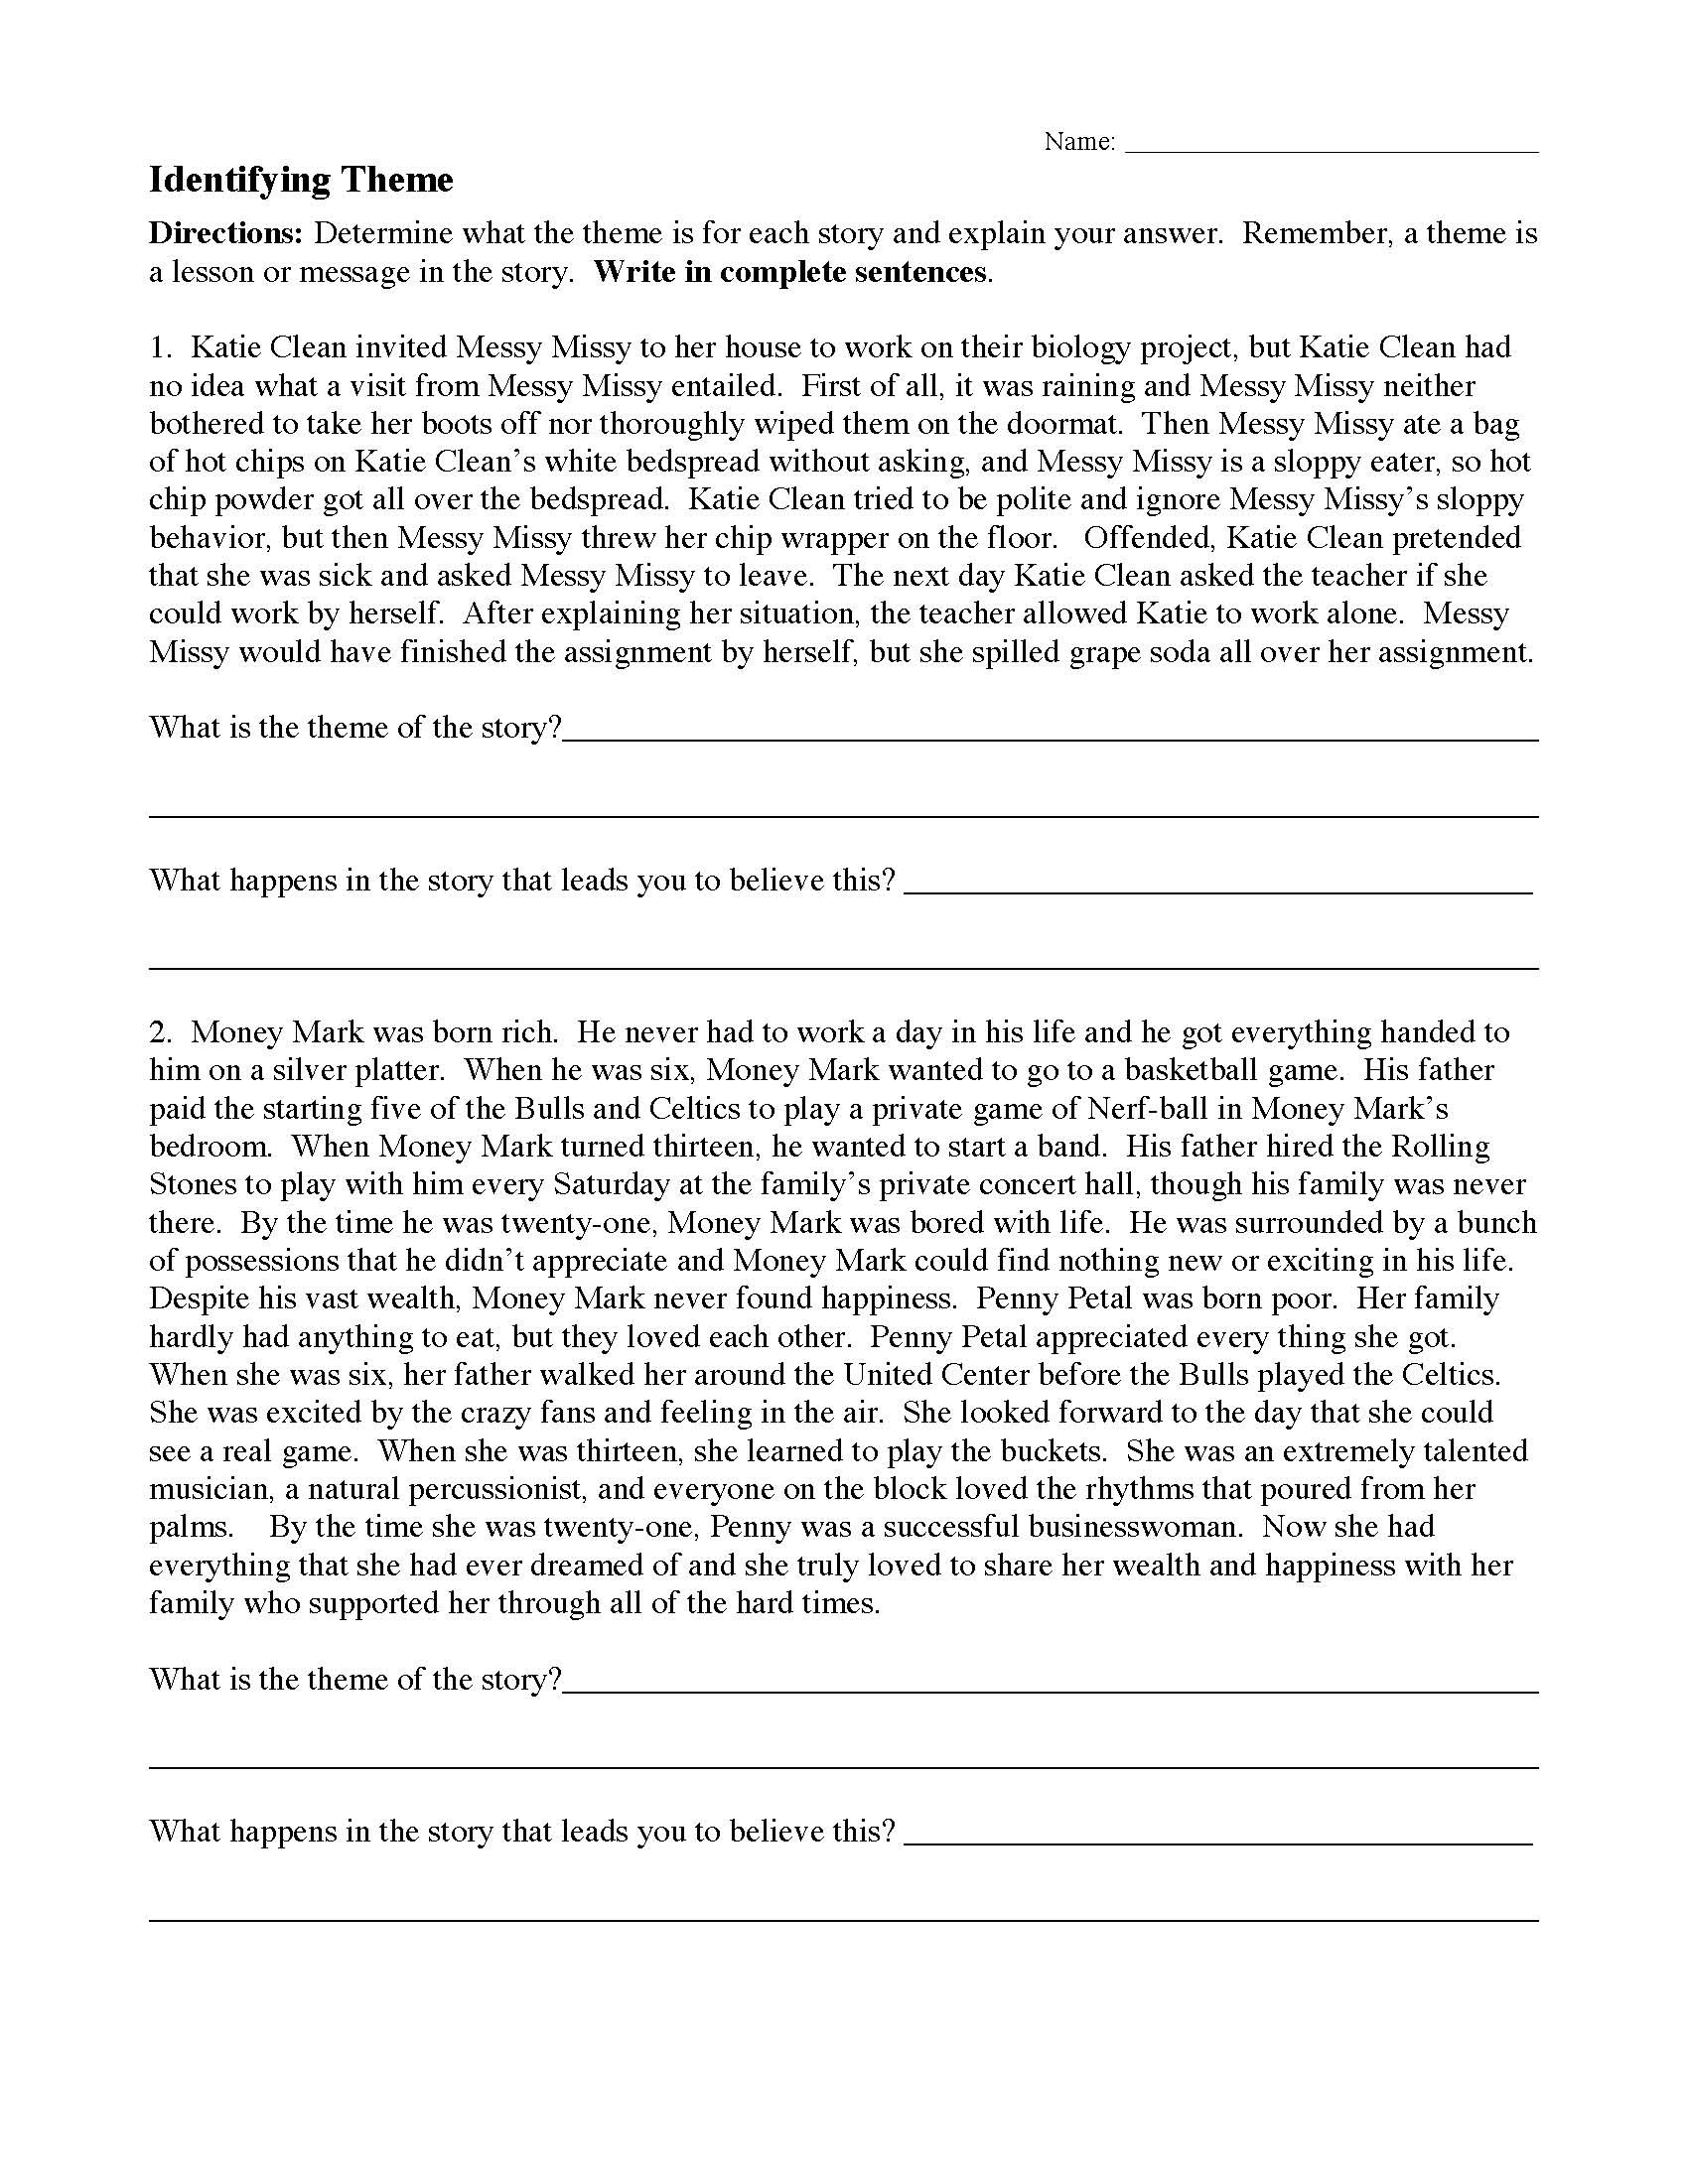 Theme Worksheet 4th Grade theme or Author S Message Worksheets